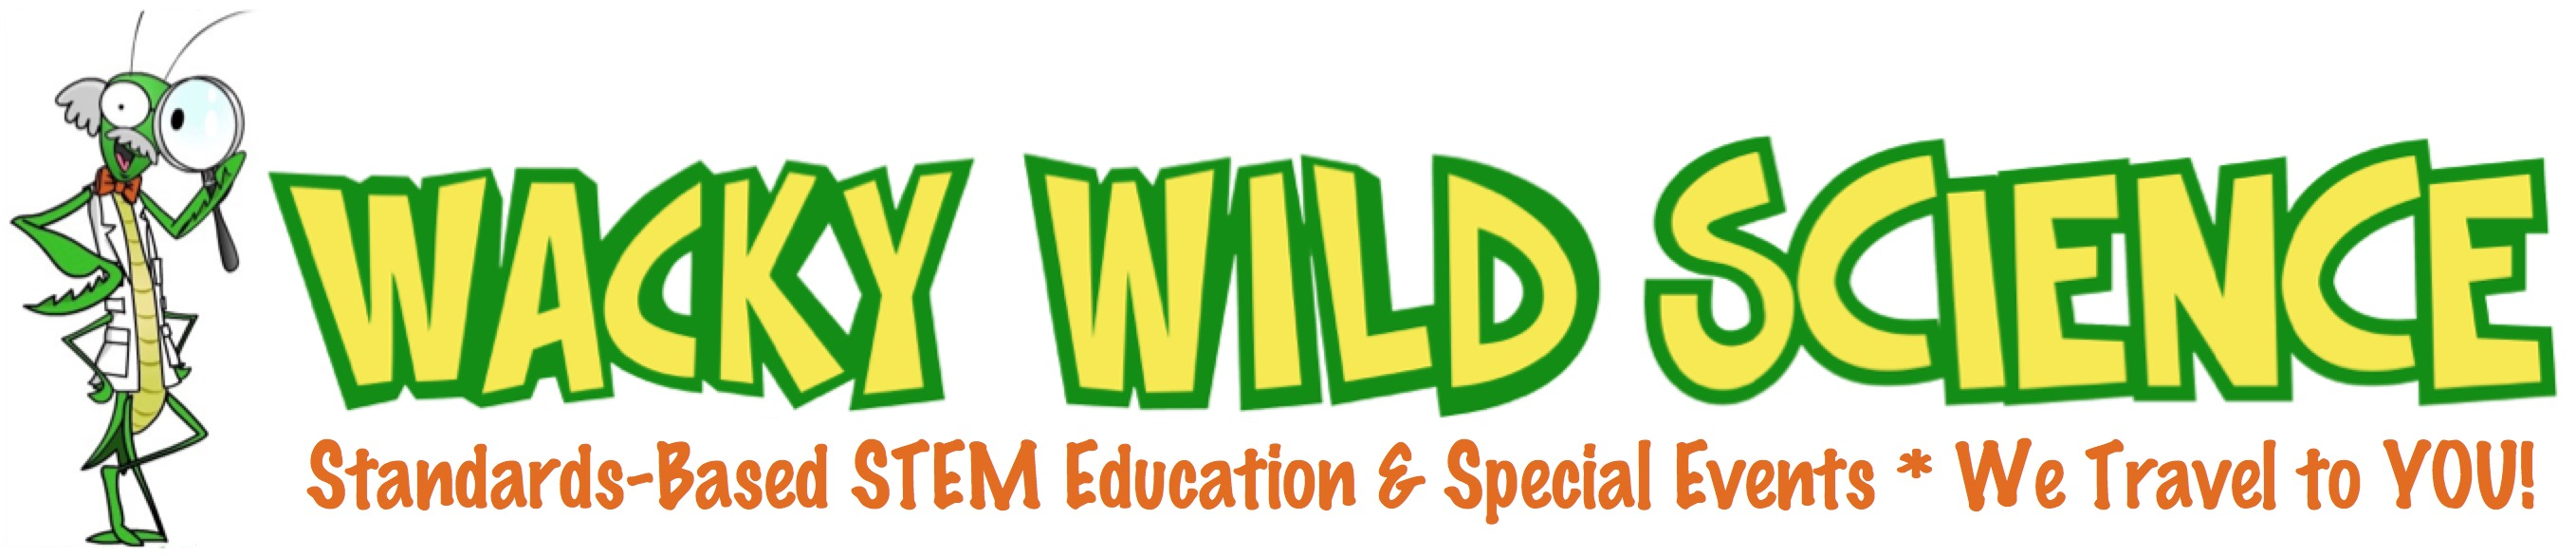 Wacky Wild Science Logo